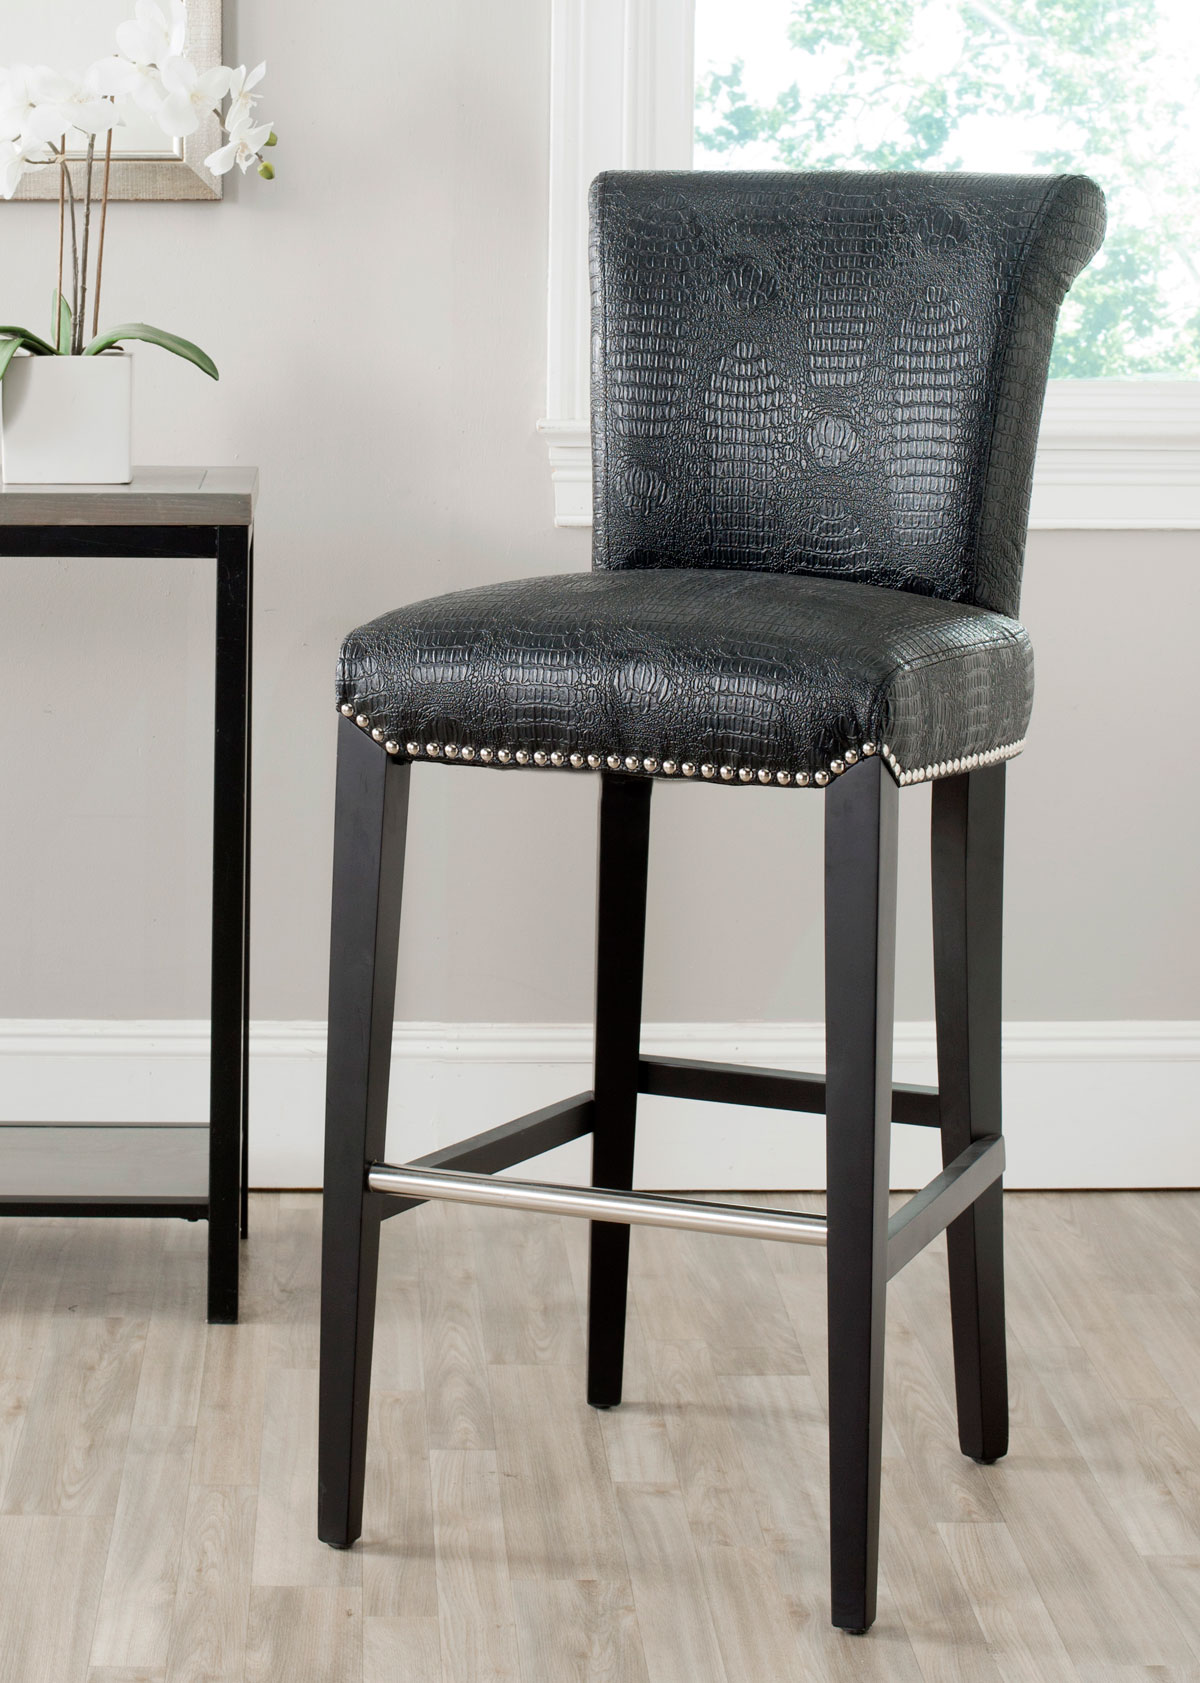 Mcr4510e Bar Stools Furniture By Safavieh